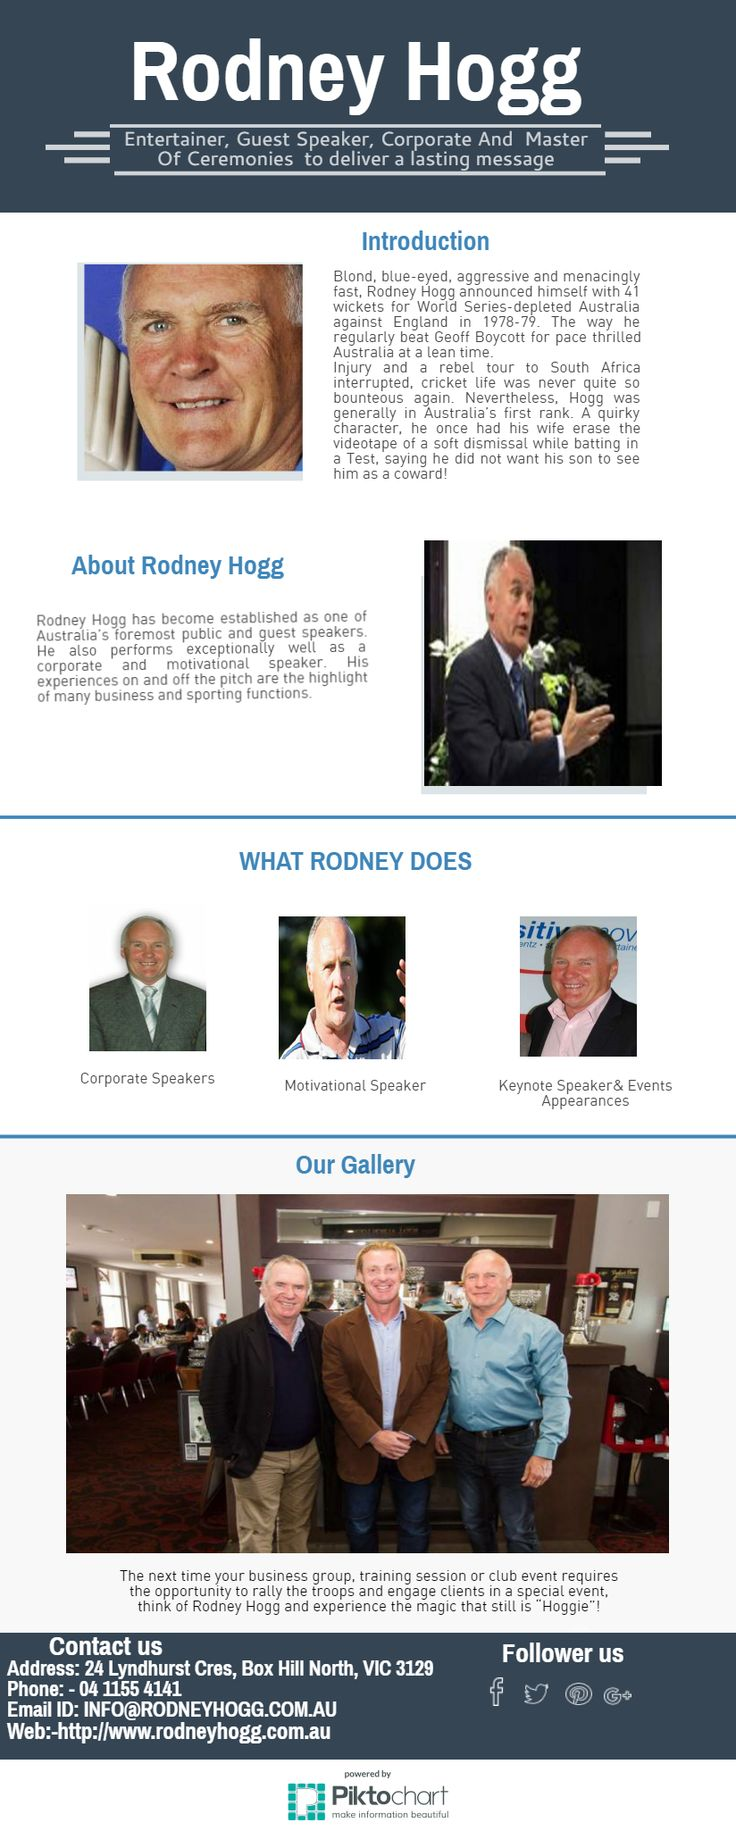 Rodney Hogg is a Soft Skills & Life Skills Trainer, Personality Development & Behavioural Skills Coach, with an excellent track record, having worked with individuals, groups teams from as varied professions and backgrounds as business, professional organizations, educational institutions.https://goo.gl/GwF5aM #InspirationalSpeakers